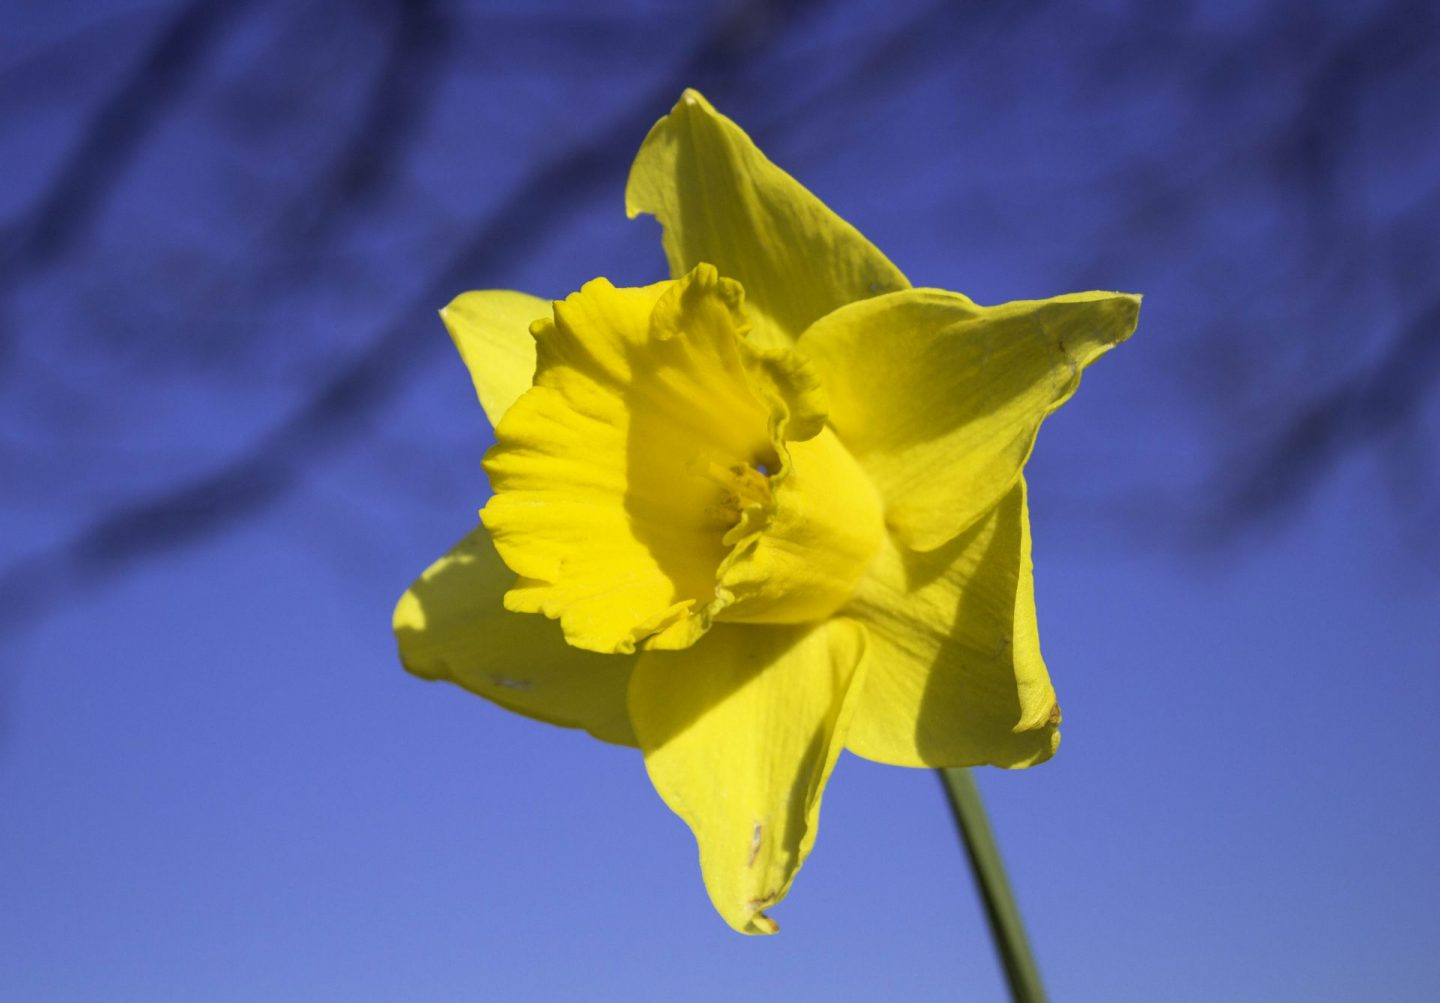 Daffodil photographed to mark Easter holiday